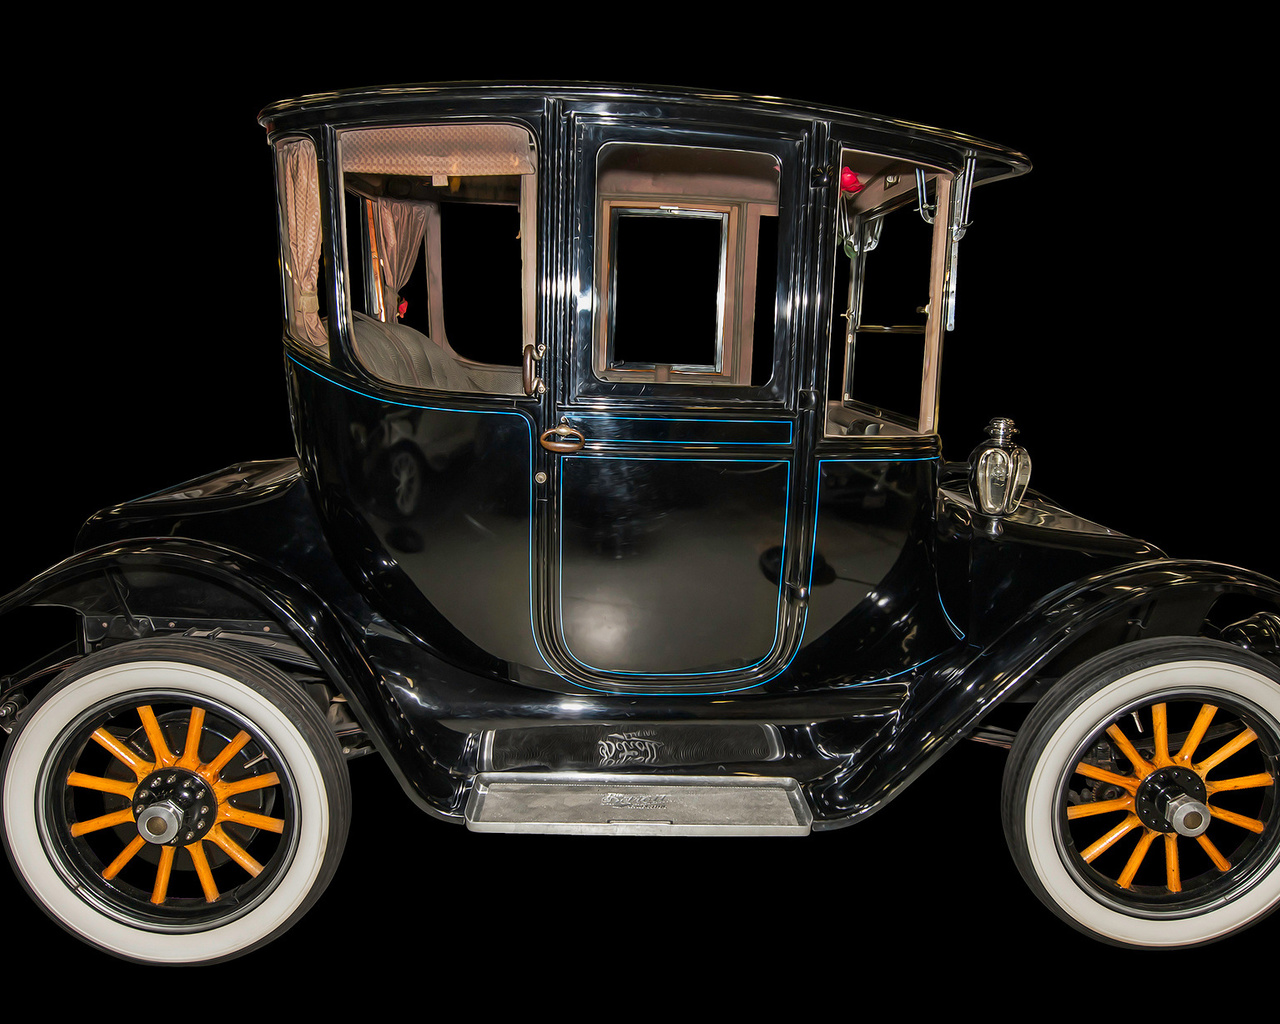 1917, detroit electric, автомобиль, ретро